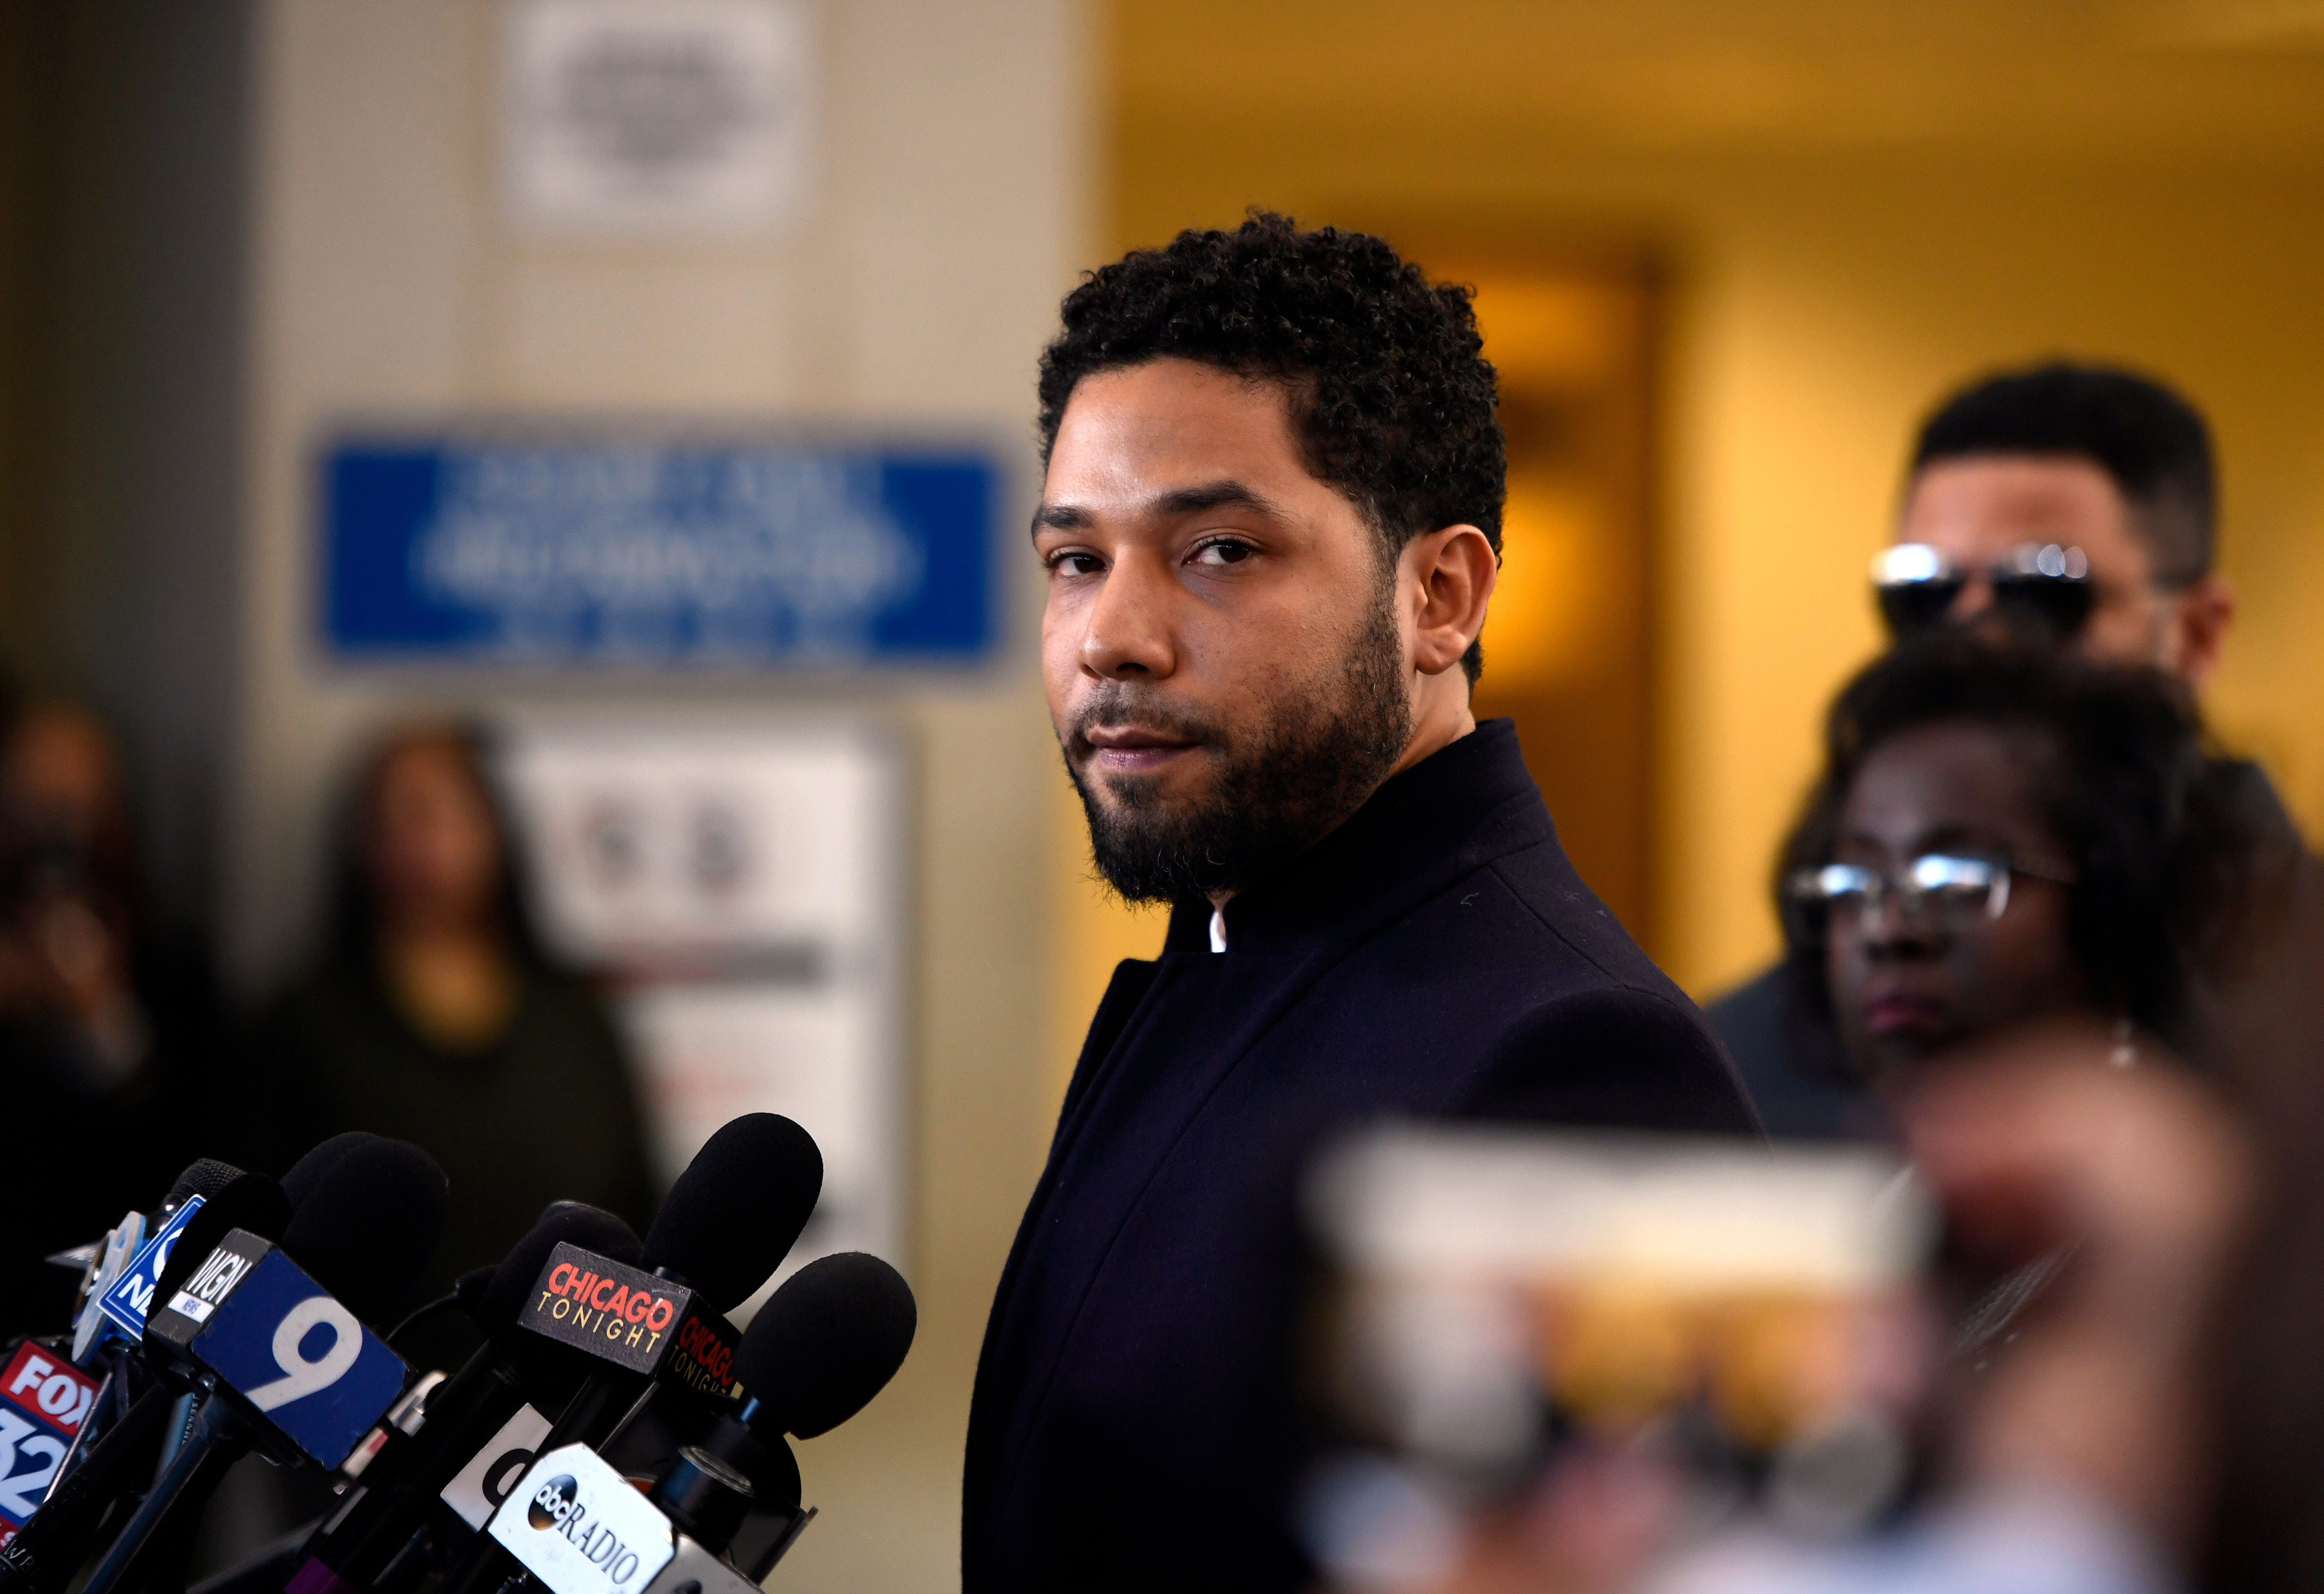 Jussie Smollett case: Prosecutor Kim Foxx questioned overcharging a 'washed up celeb' in text